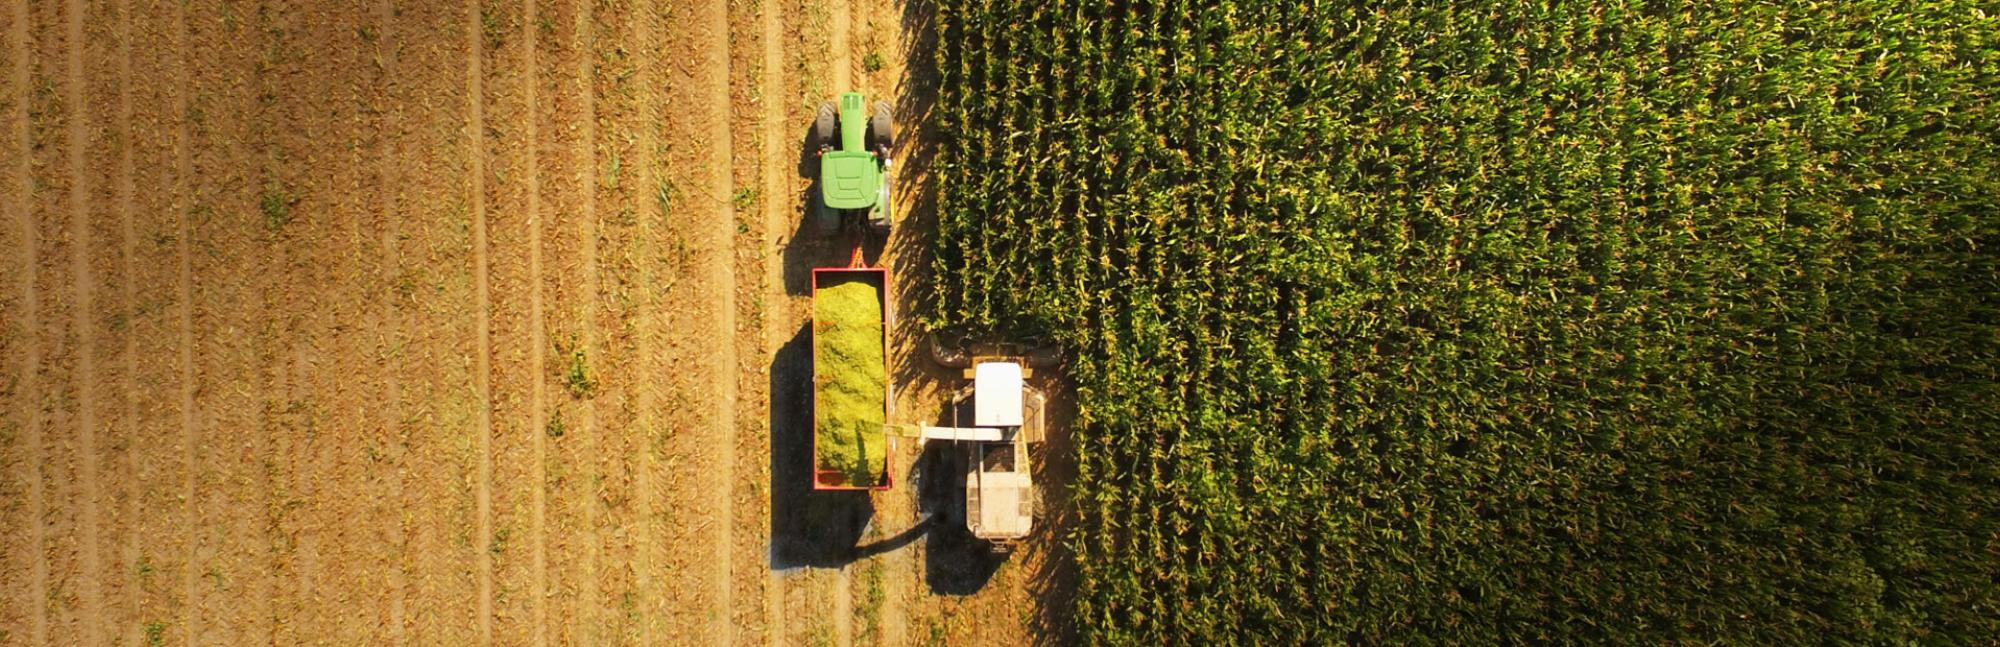 Aerial view of a tractor harvesting a crop